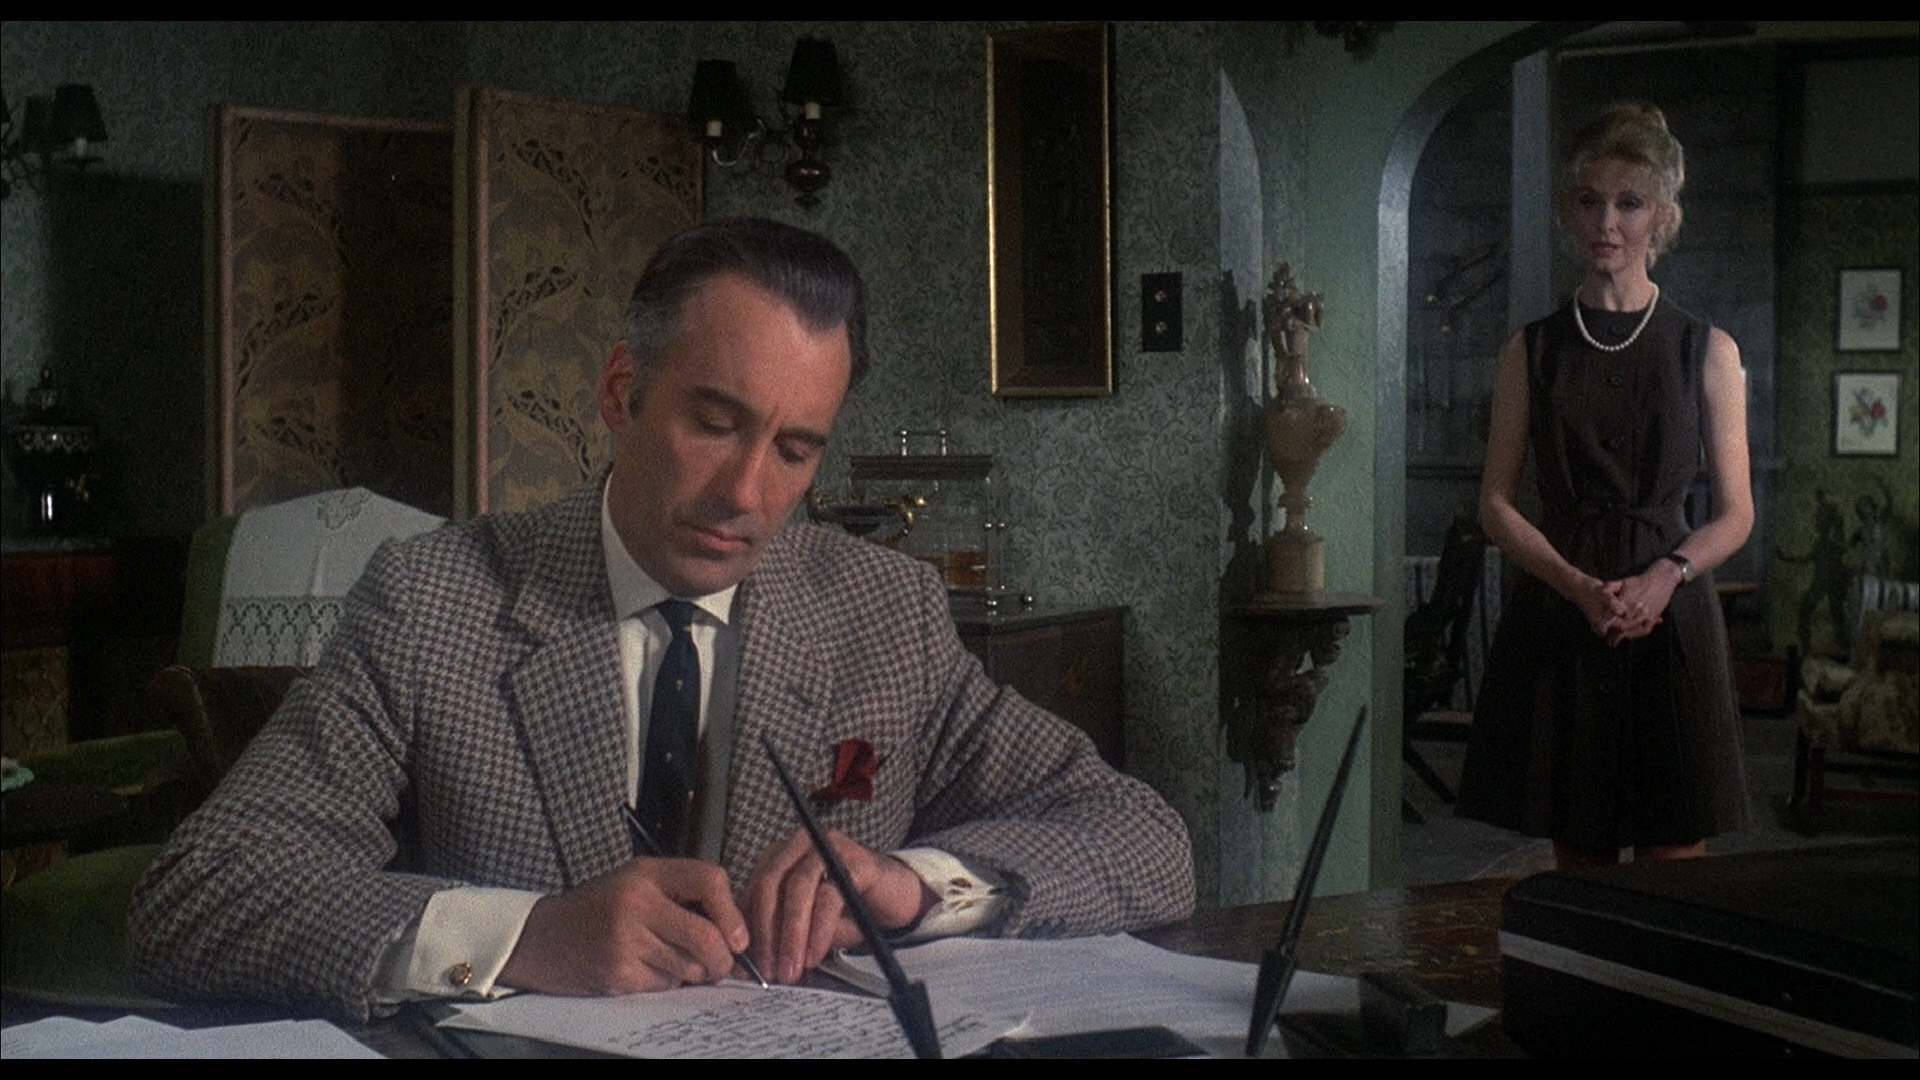 Christopher Lee - The House That Dripped Blood